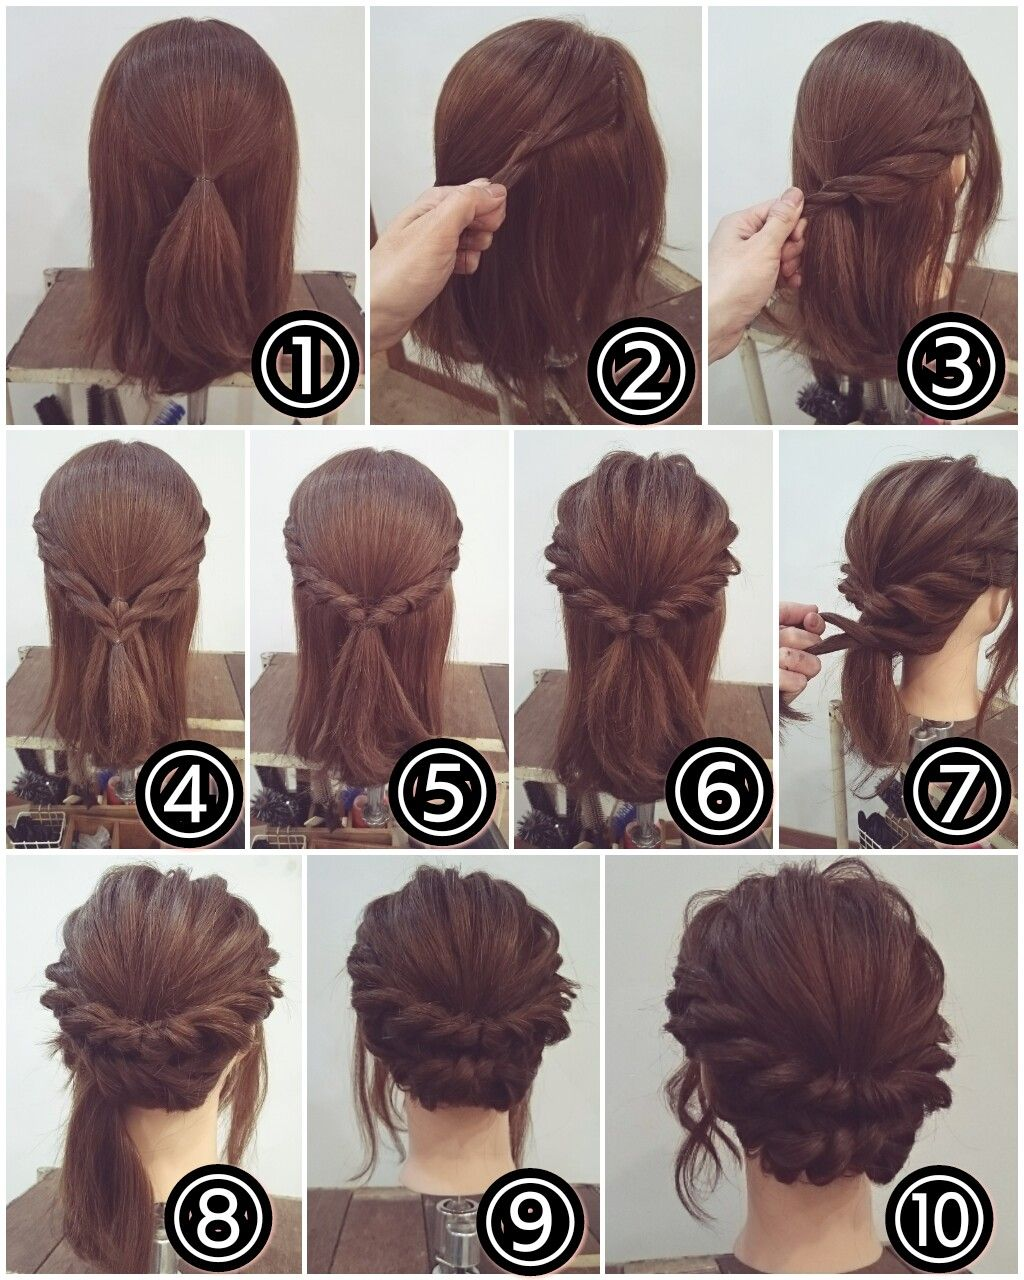 pin by emily bickl on wedding clothing & hair | hair styles